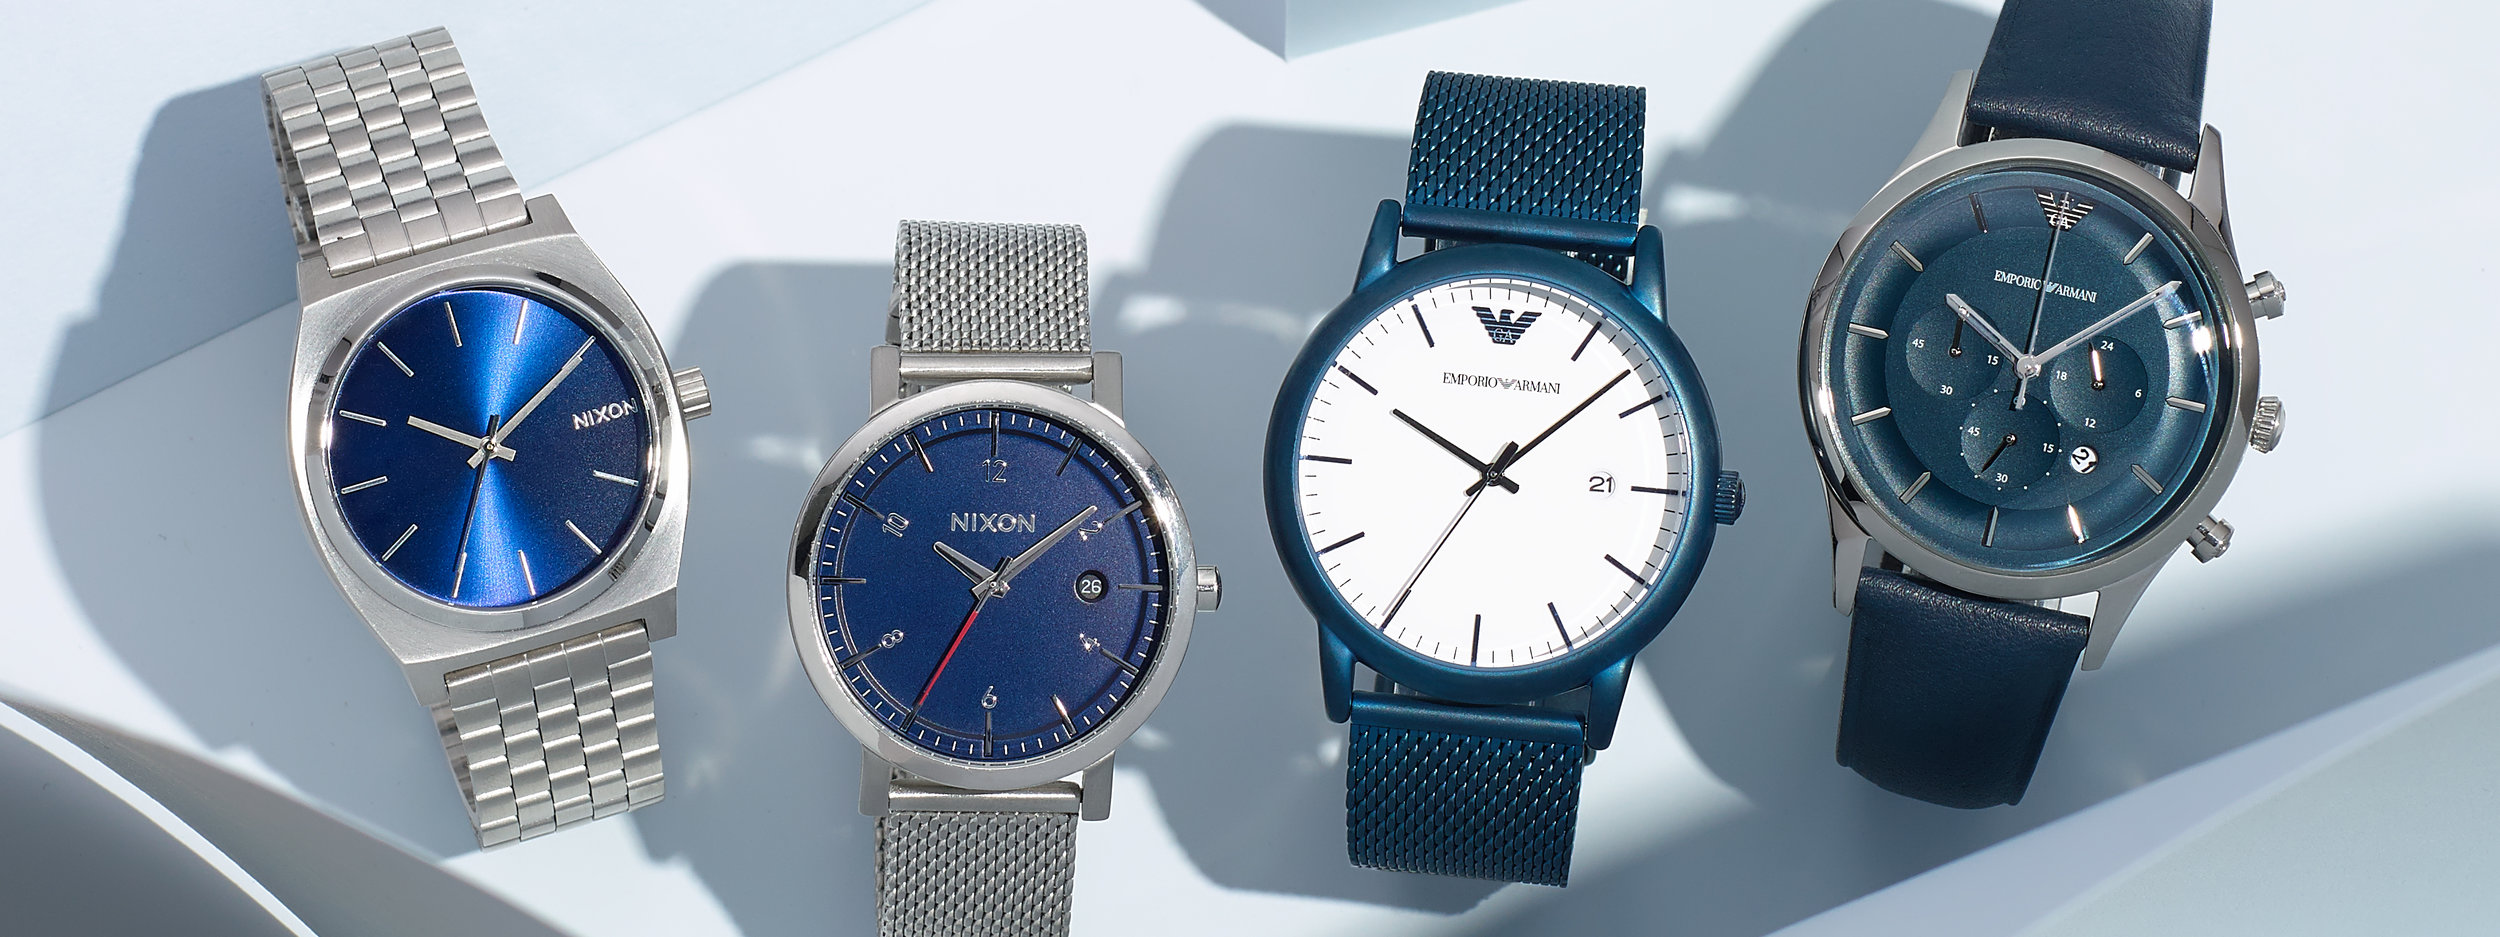 0110_SPRING2_W_M_GW_MOBILE_BLUEWATCHES_banner_1T.jpg